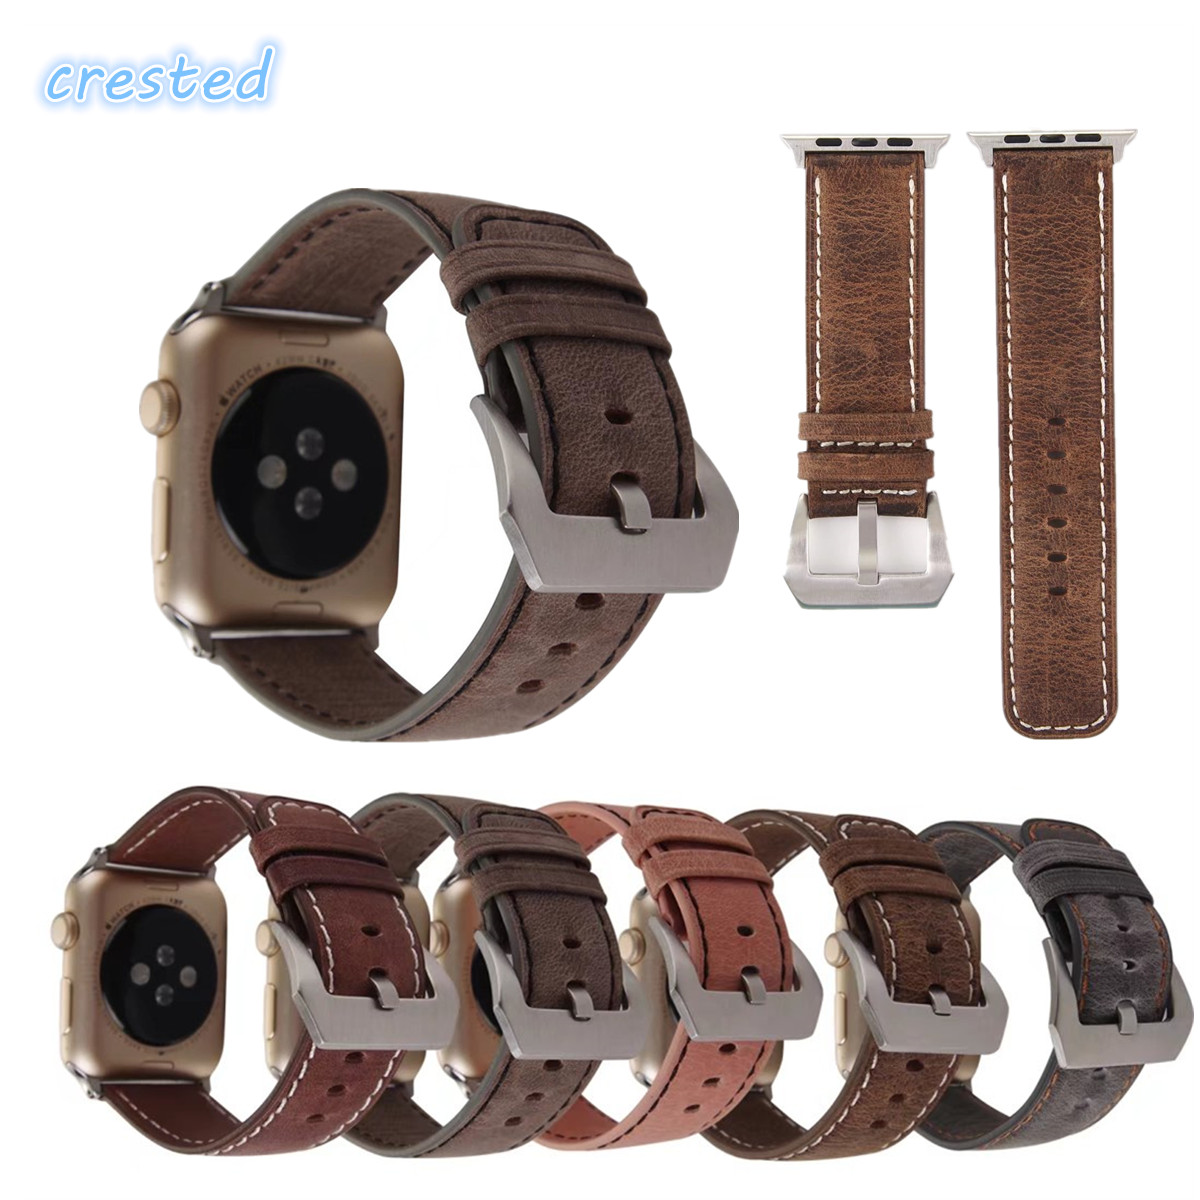 CRESTED Retro Leather Watch Band Strap for Apple Watch band 42 mm 38 mm replacement Wrist